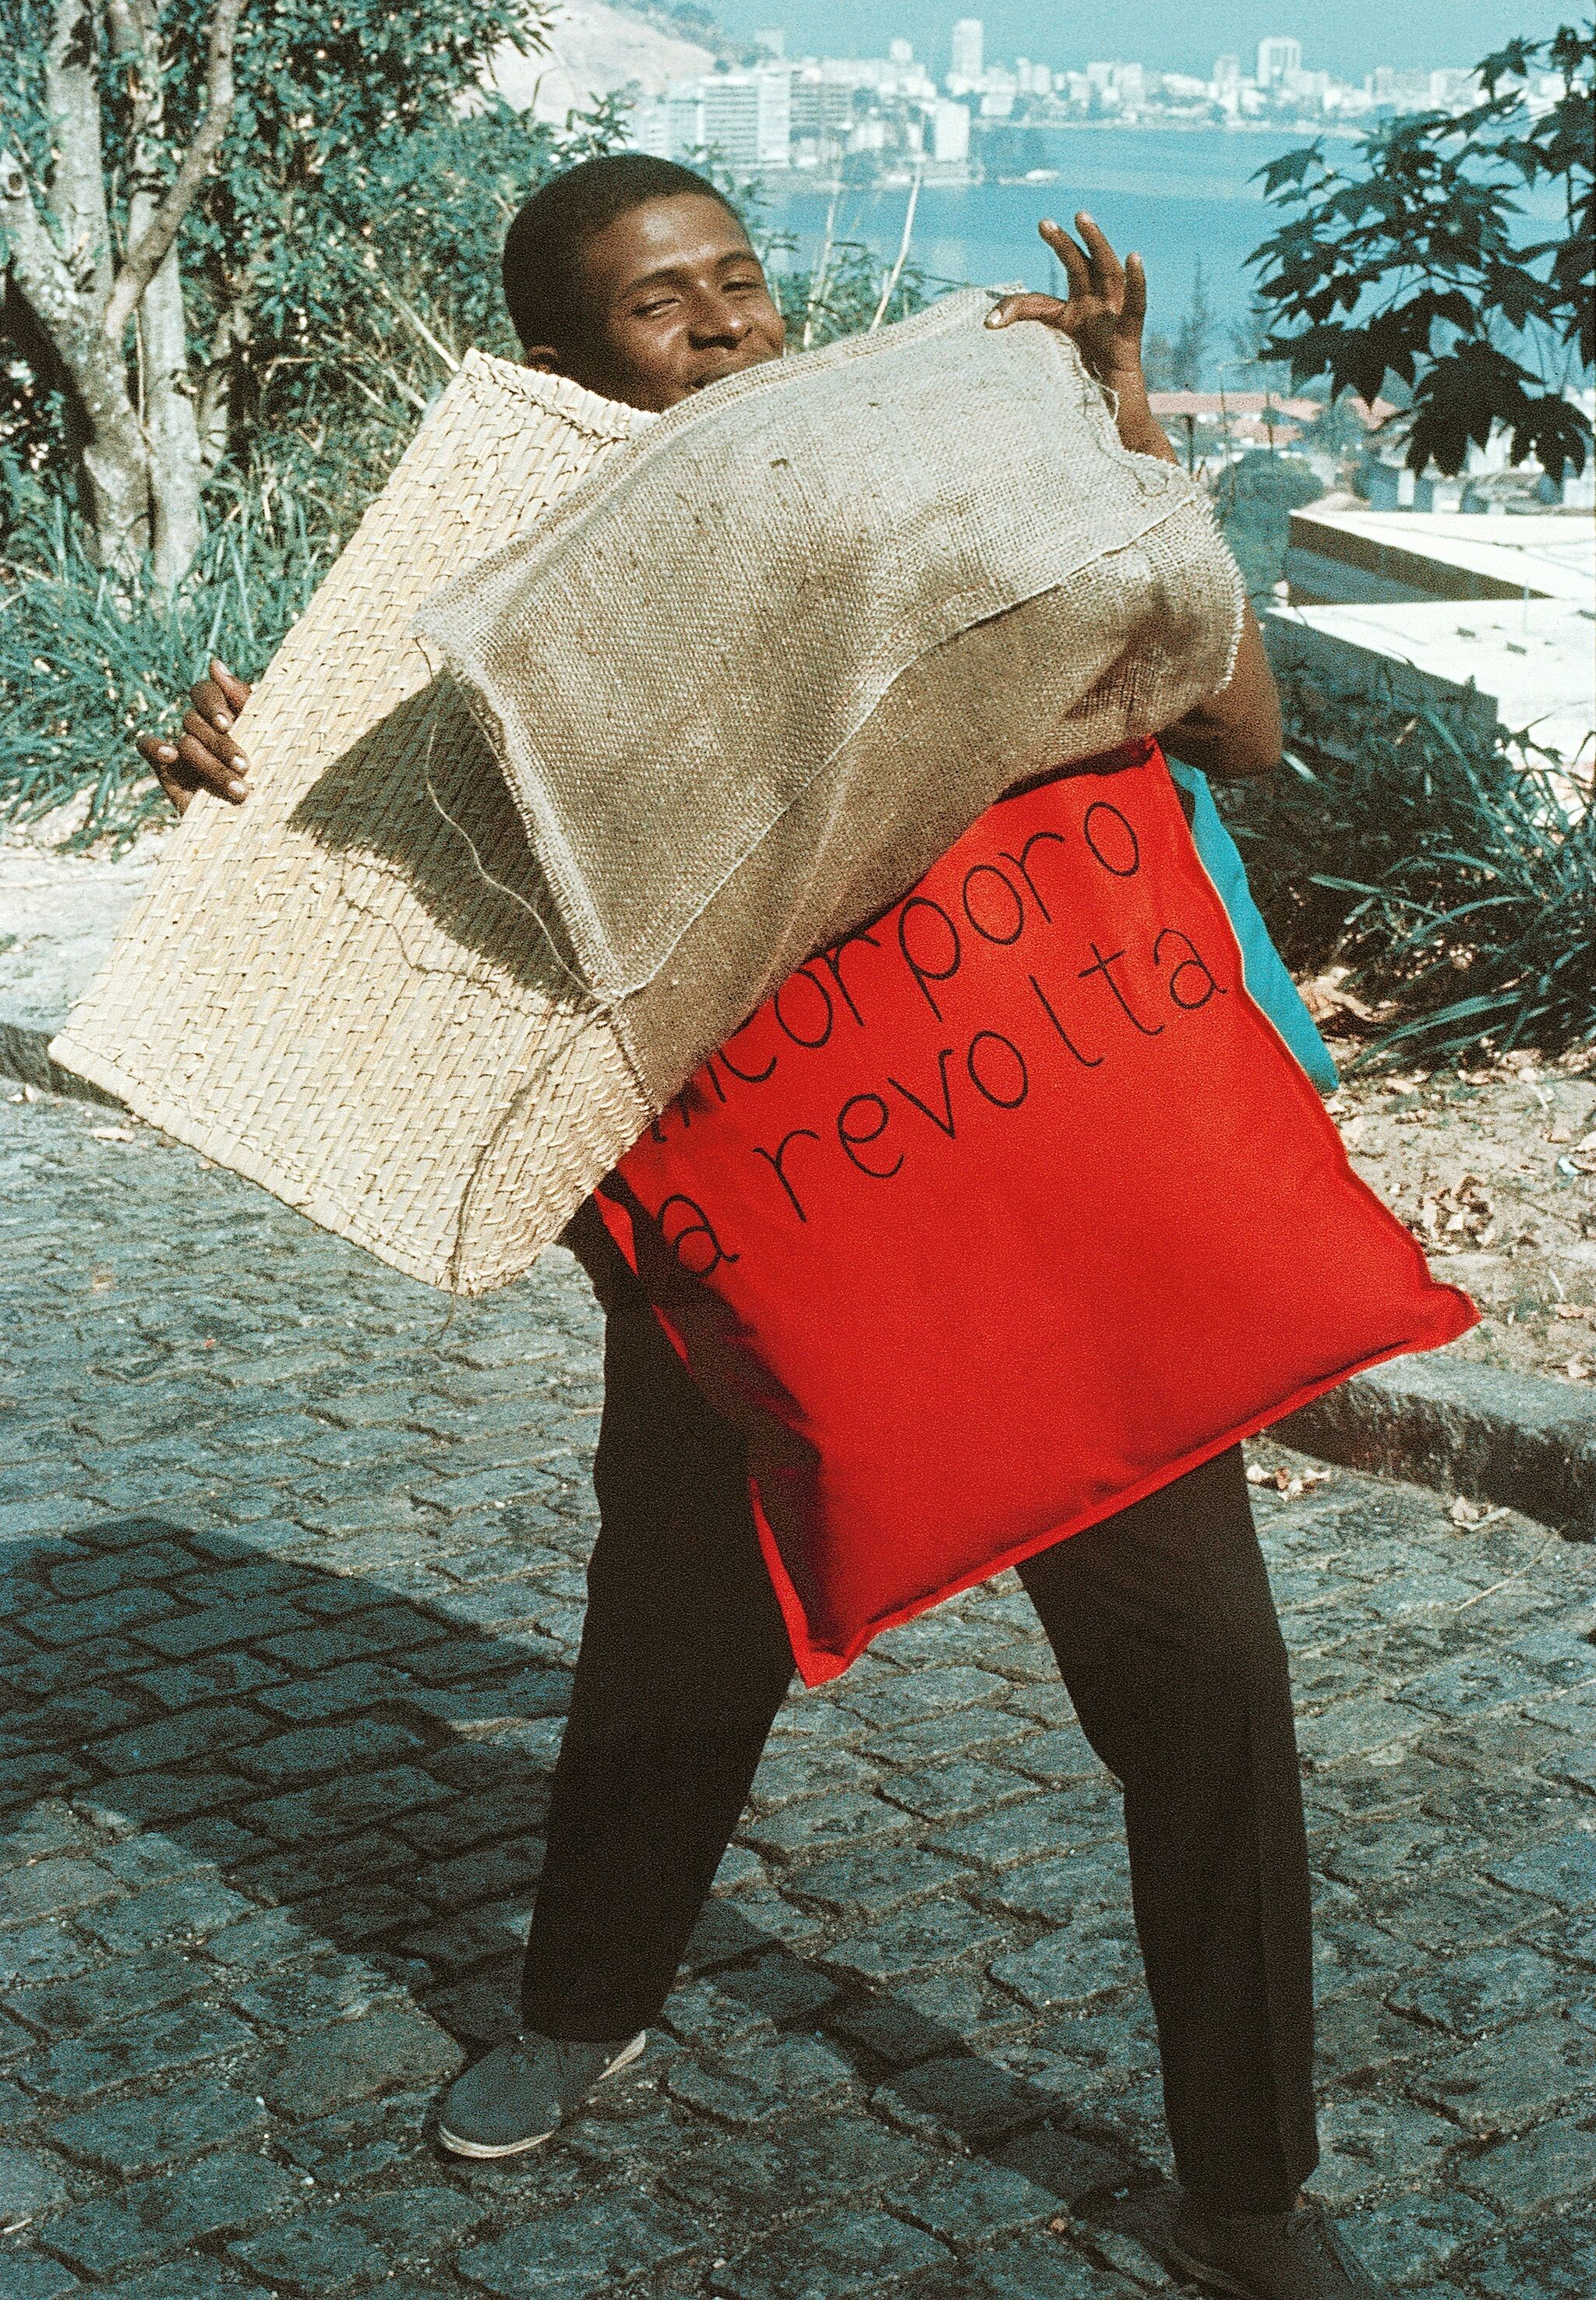 Image of man standing in street on hill overlooking body of water and holding burlap and pillows that say incorporo a revolta